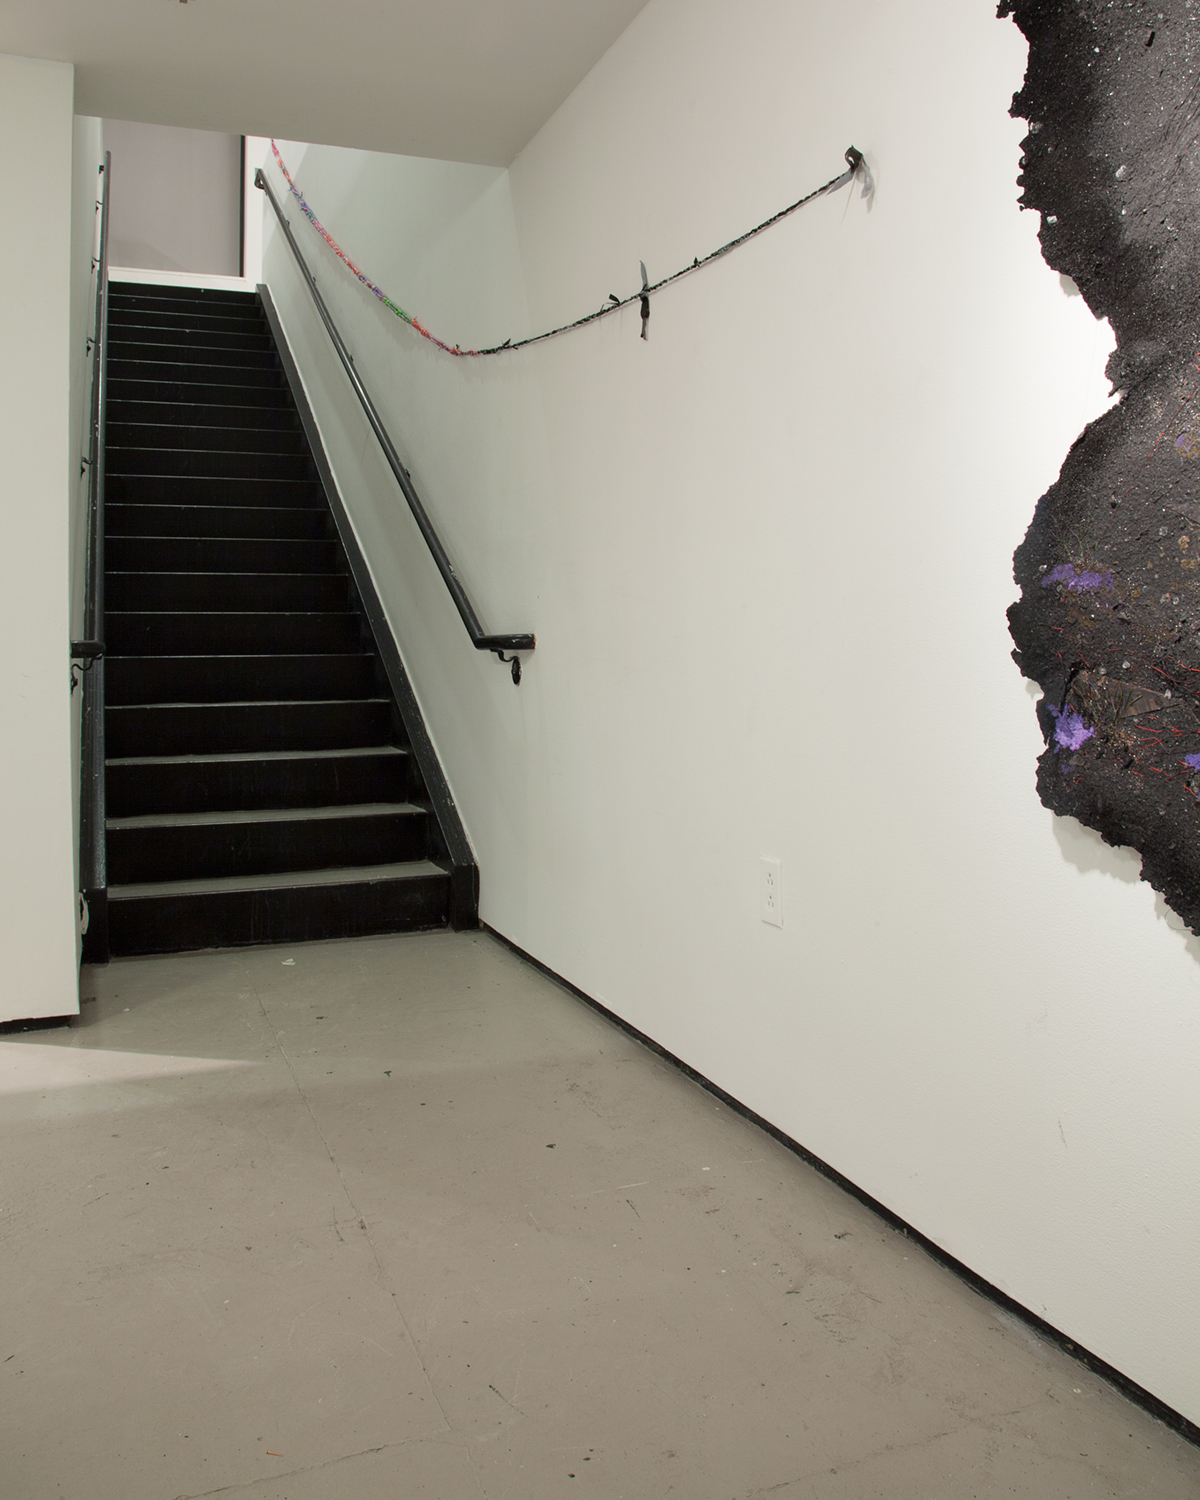 End of installation pointing to sculptureby Brandon Coley Cox